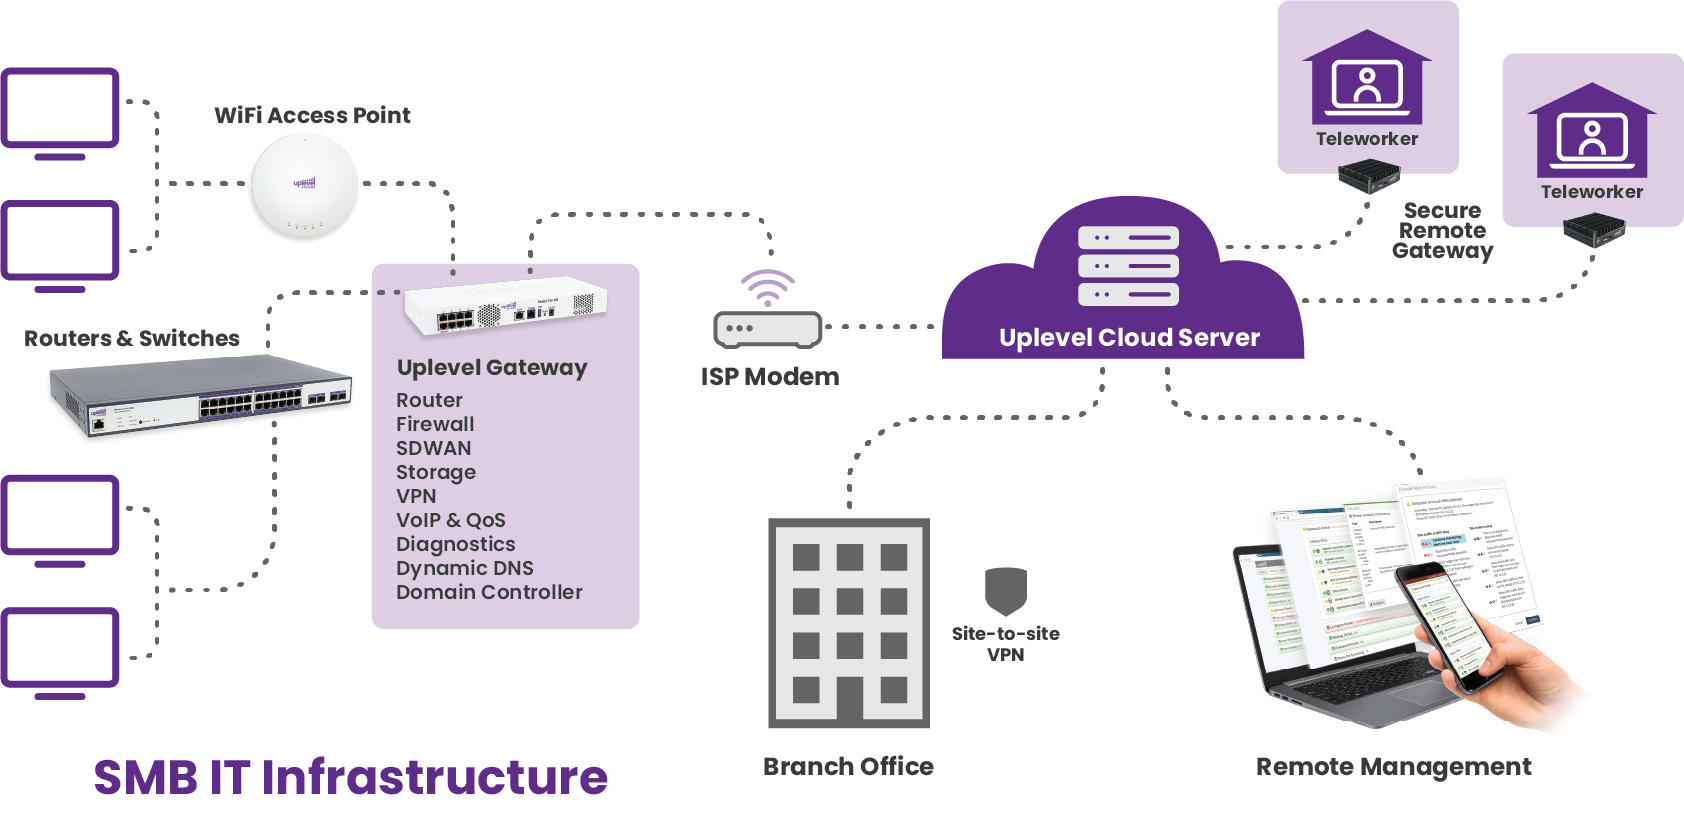 An illustrated diagram mapping out Uplevel Systems' small business IT and remote management workflows